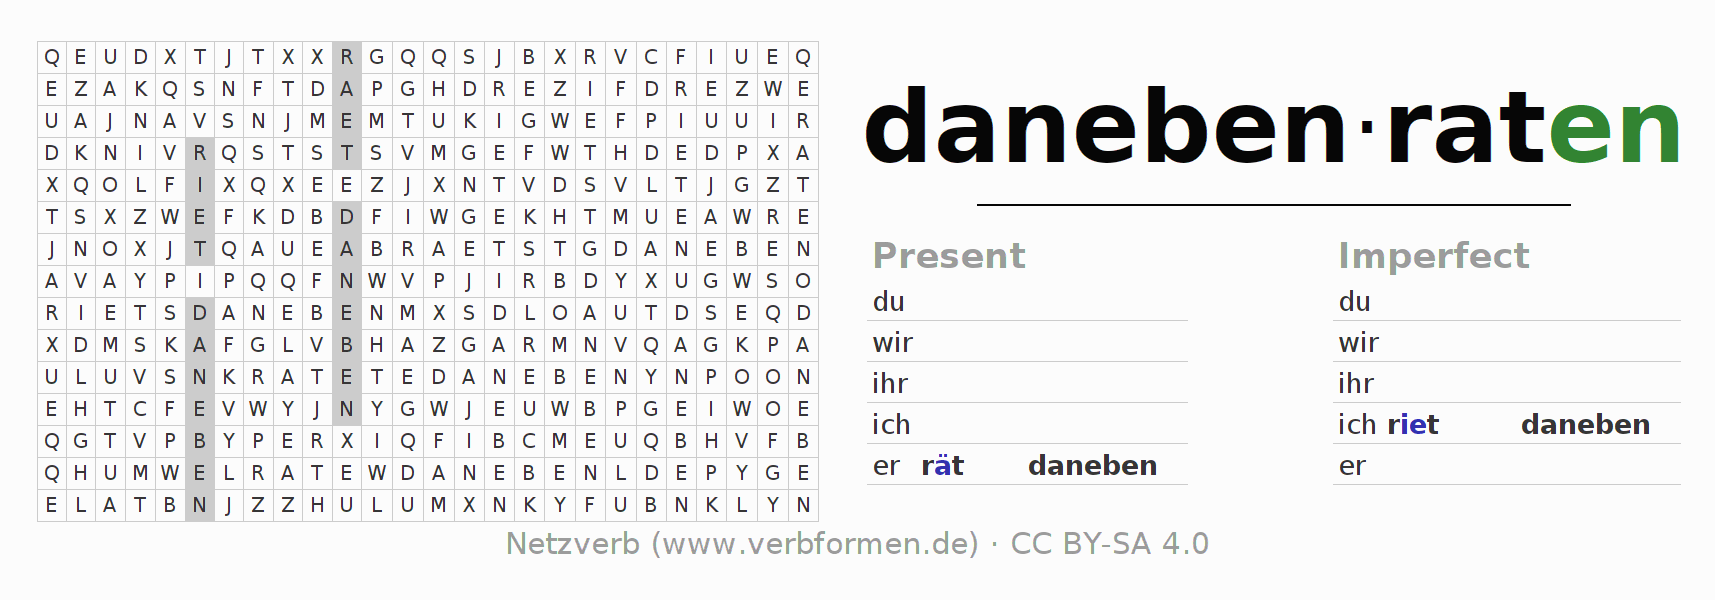 Word search puzzle for the conjugation of the verb danebenraten